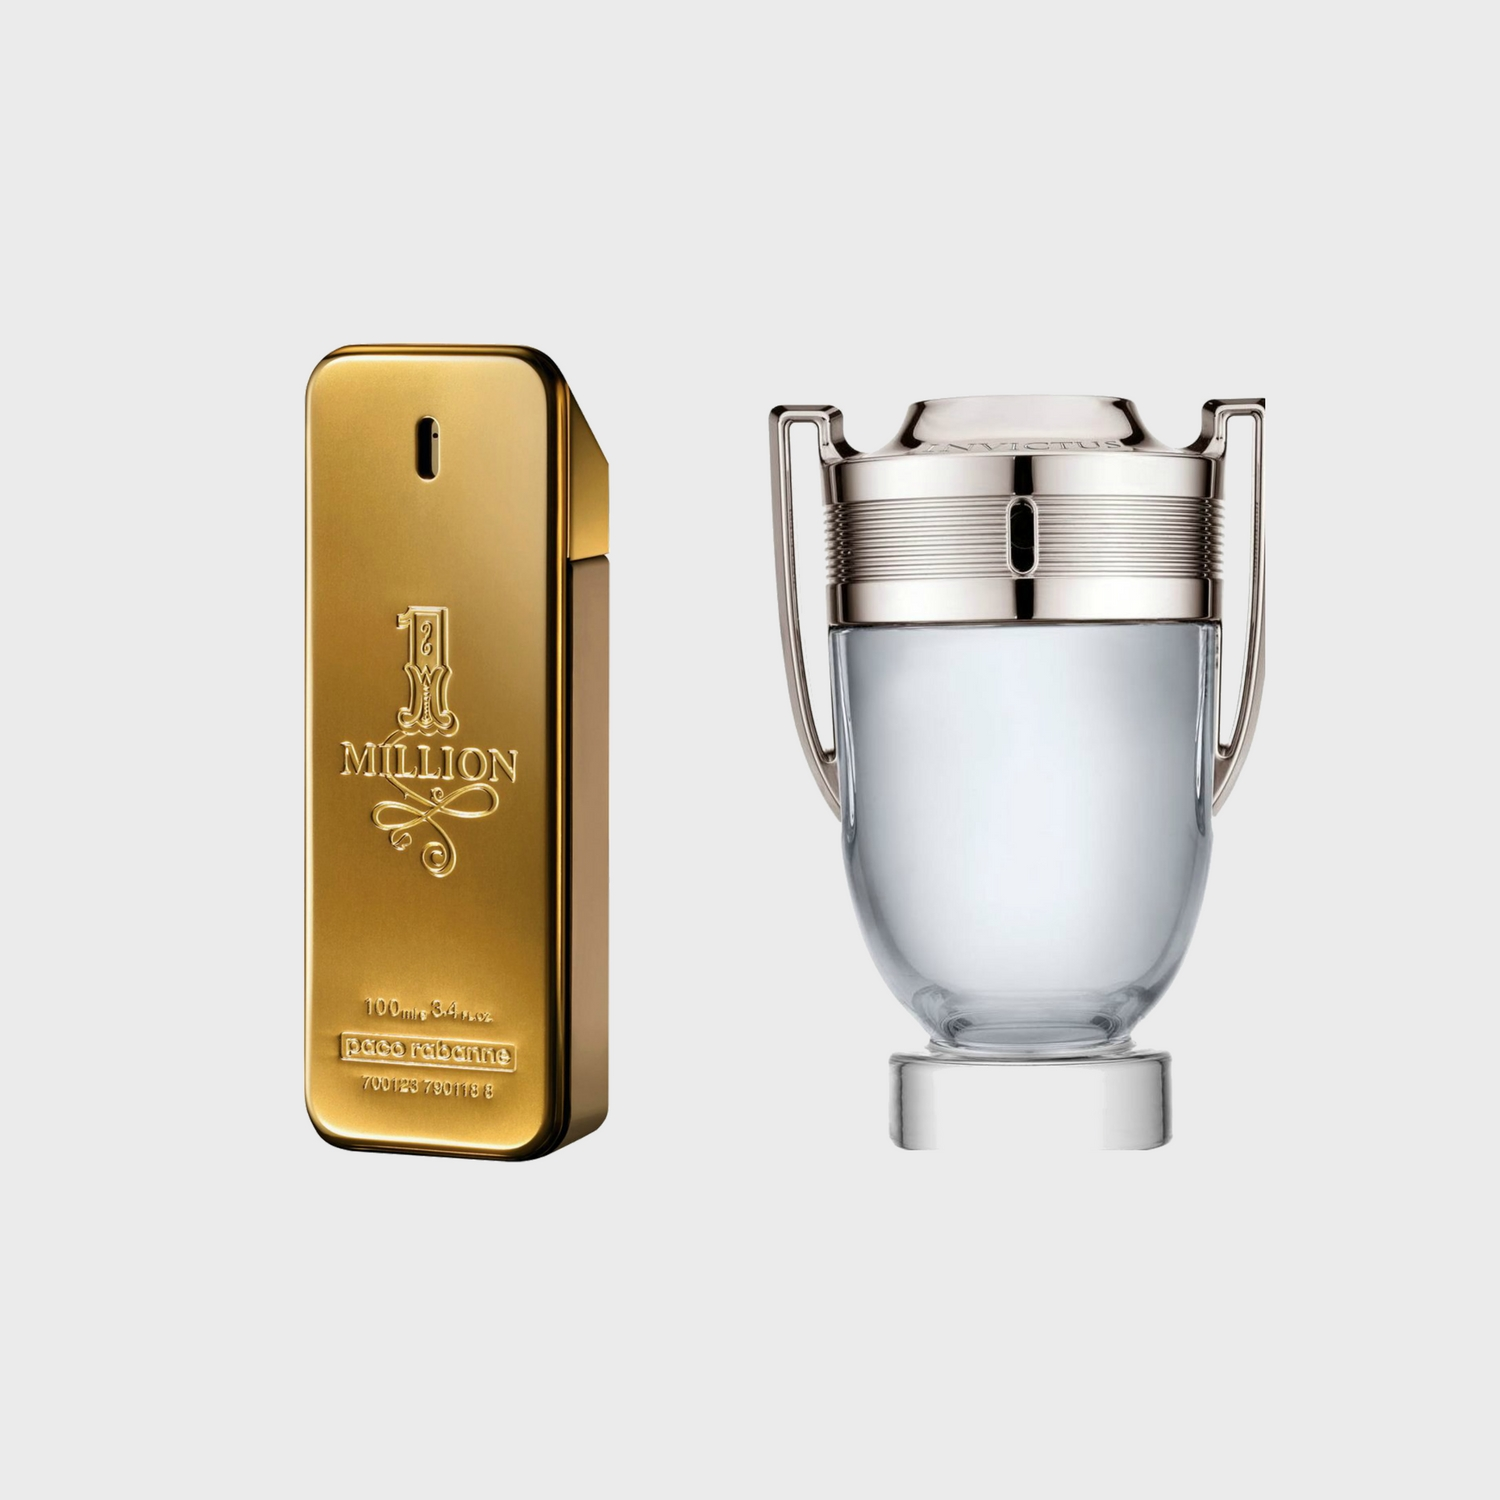 Paco Rabanne 1 Million & Invictus Paco Rabanne - Men's Fragrance Review